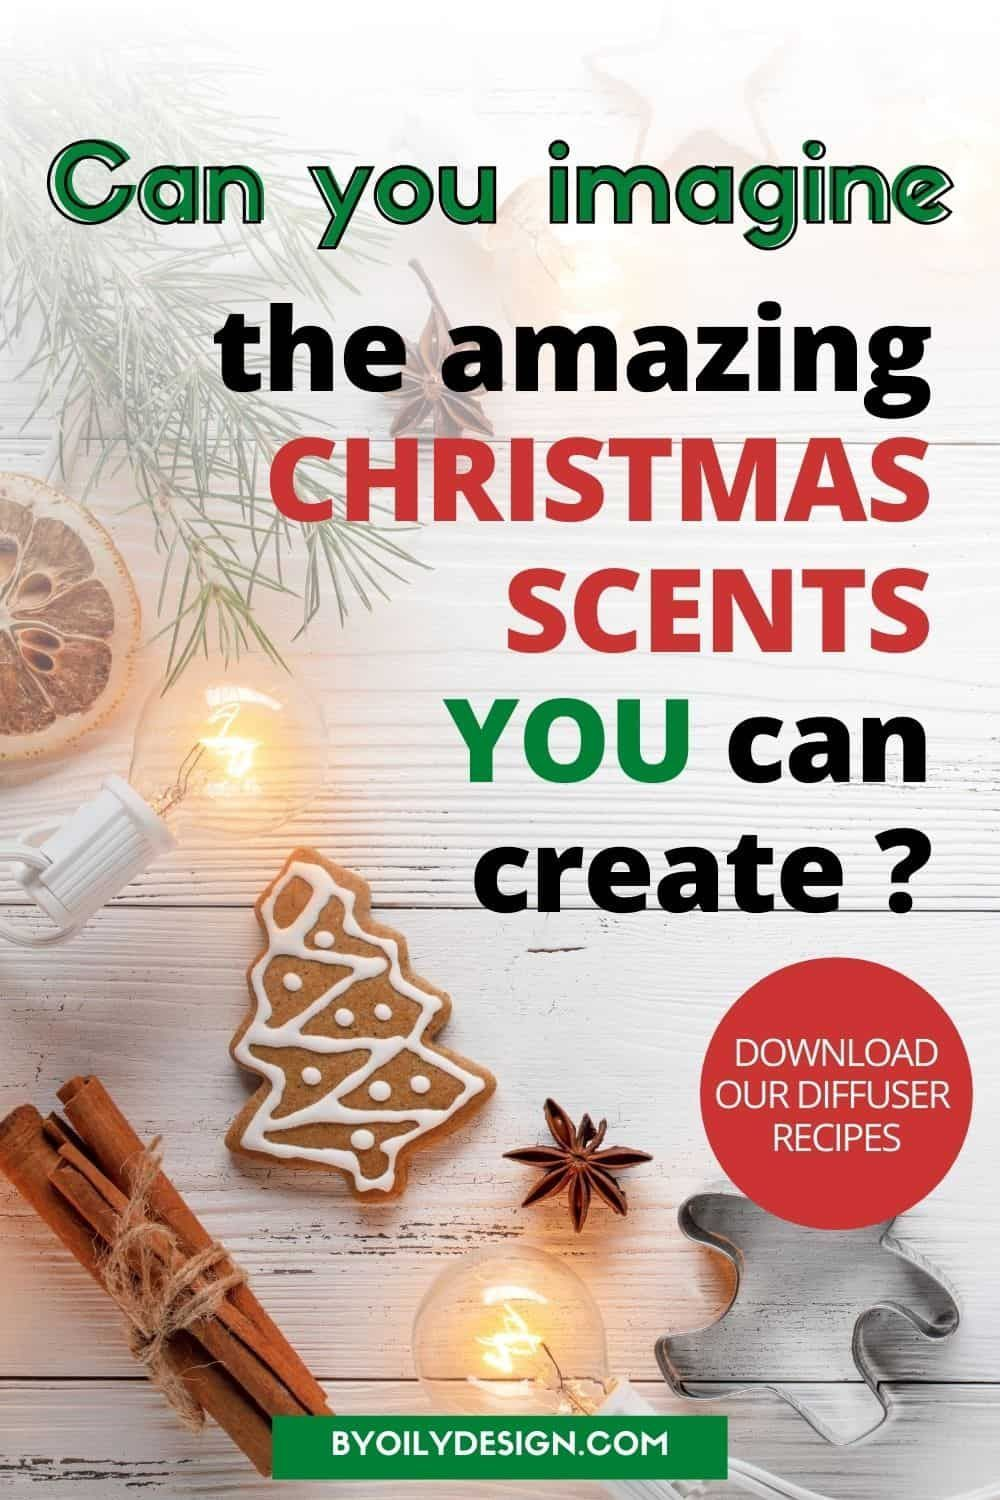 Get in the Christmas Spirit with 11 diffuser recipes in